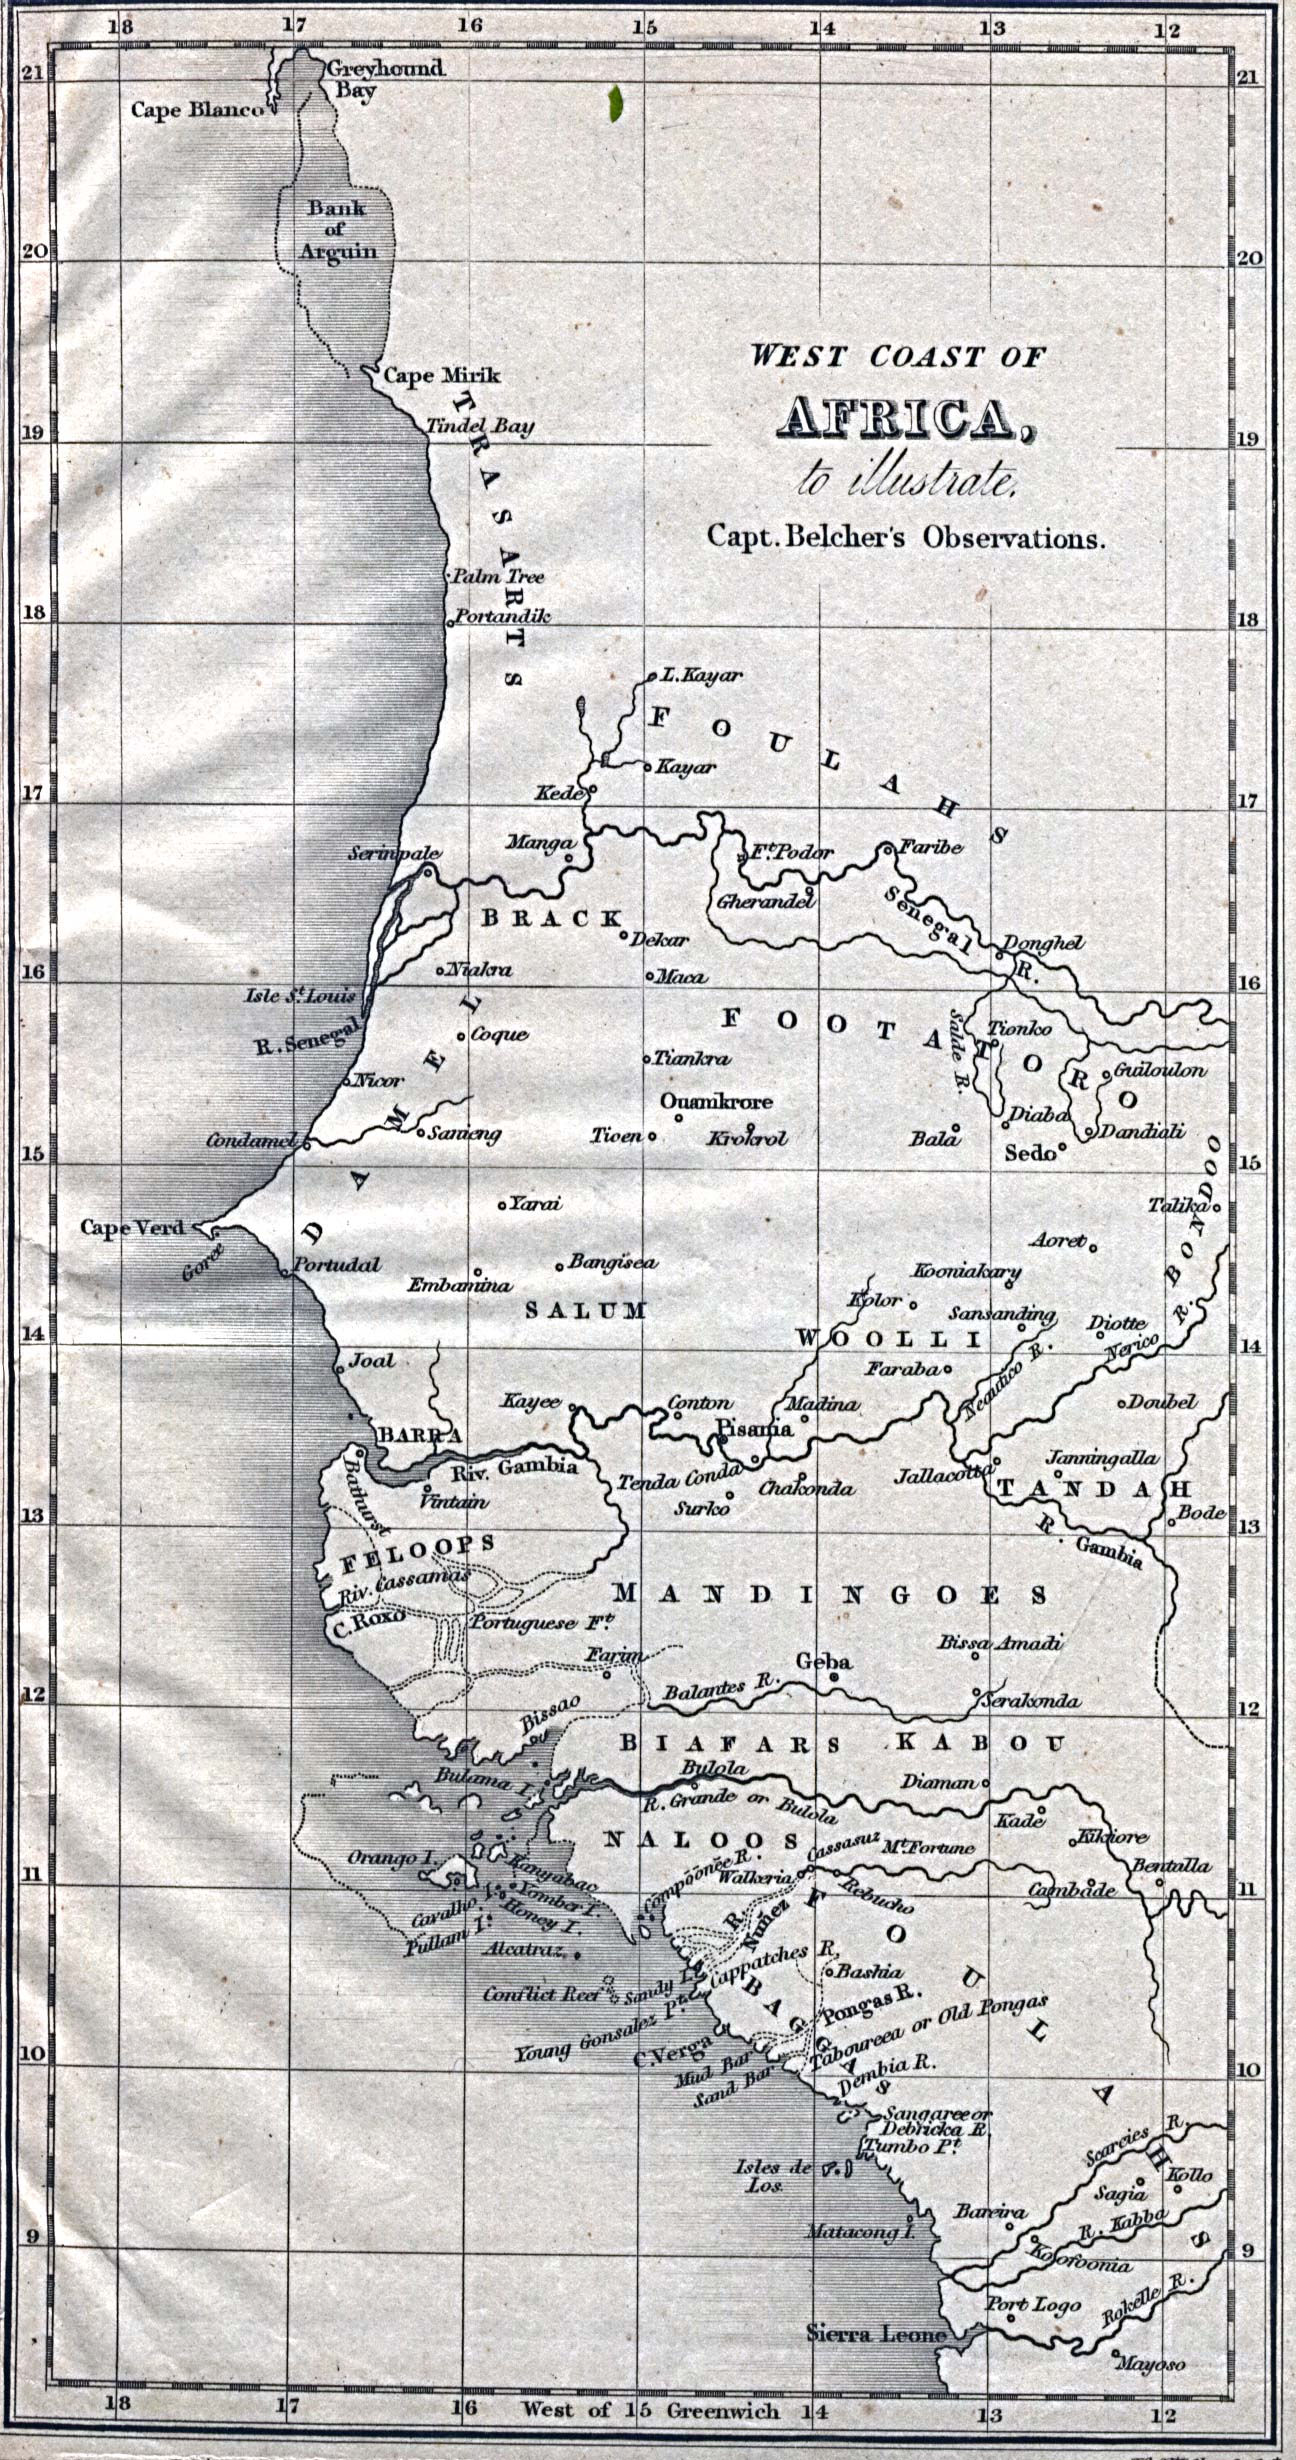 Africa West Coast Map 1832